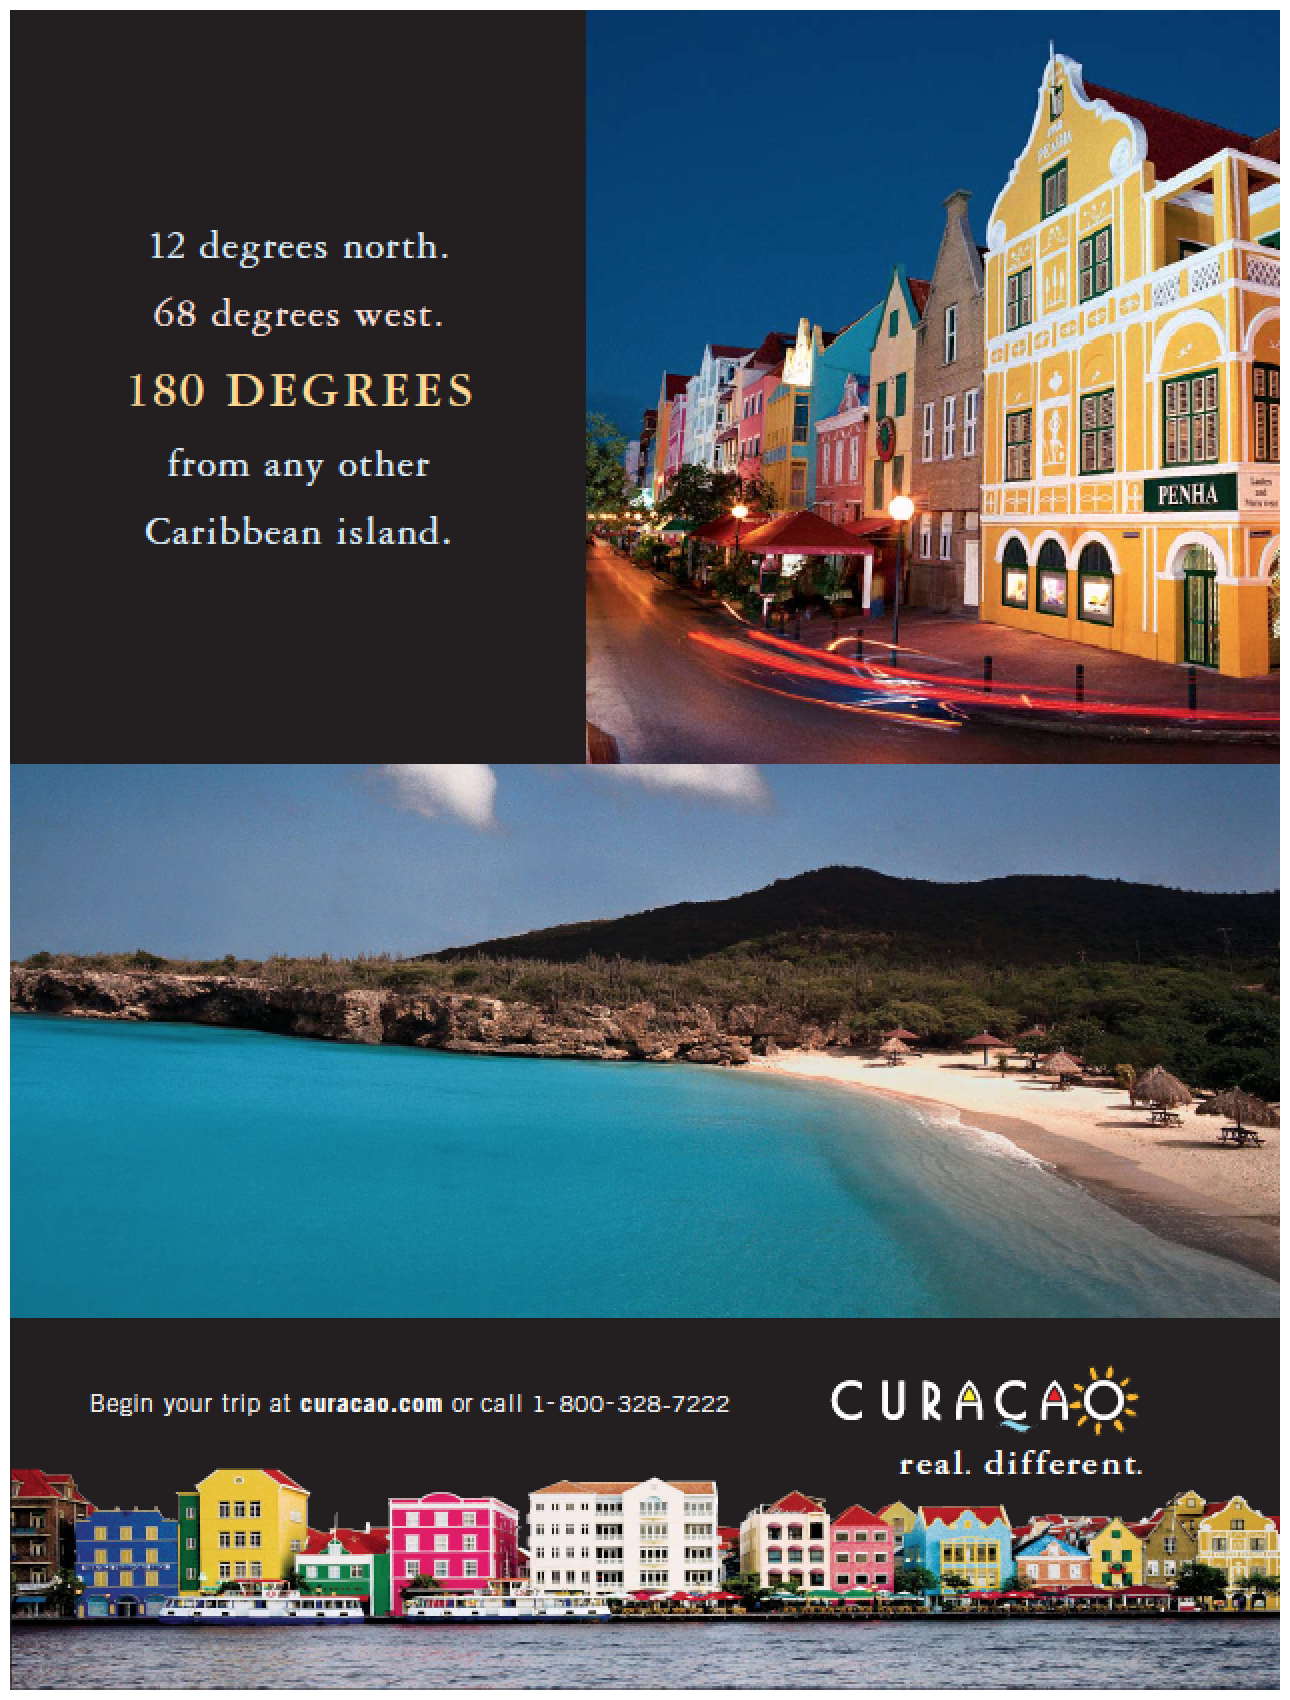 Curacao_12 degrees